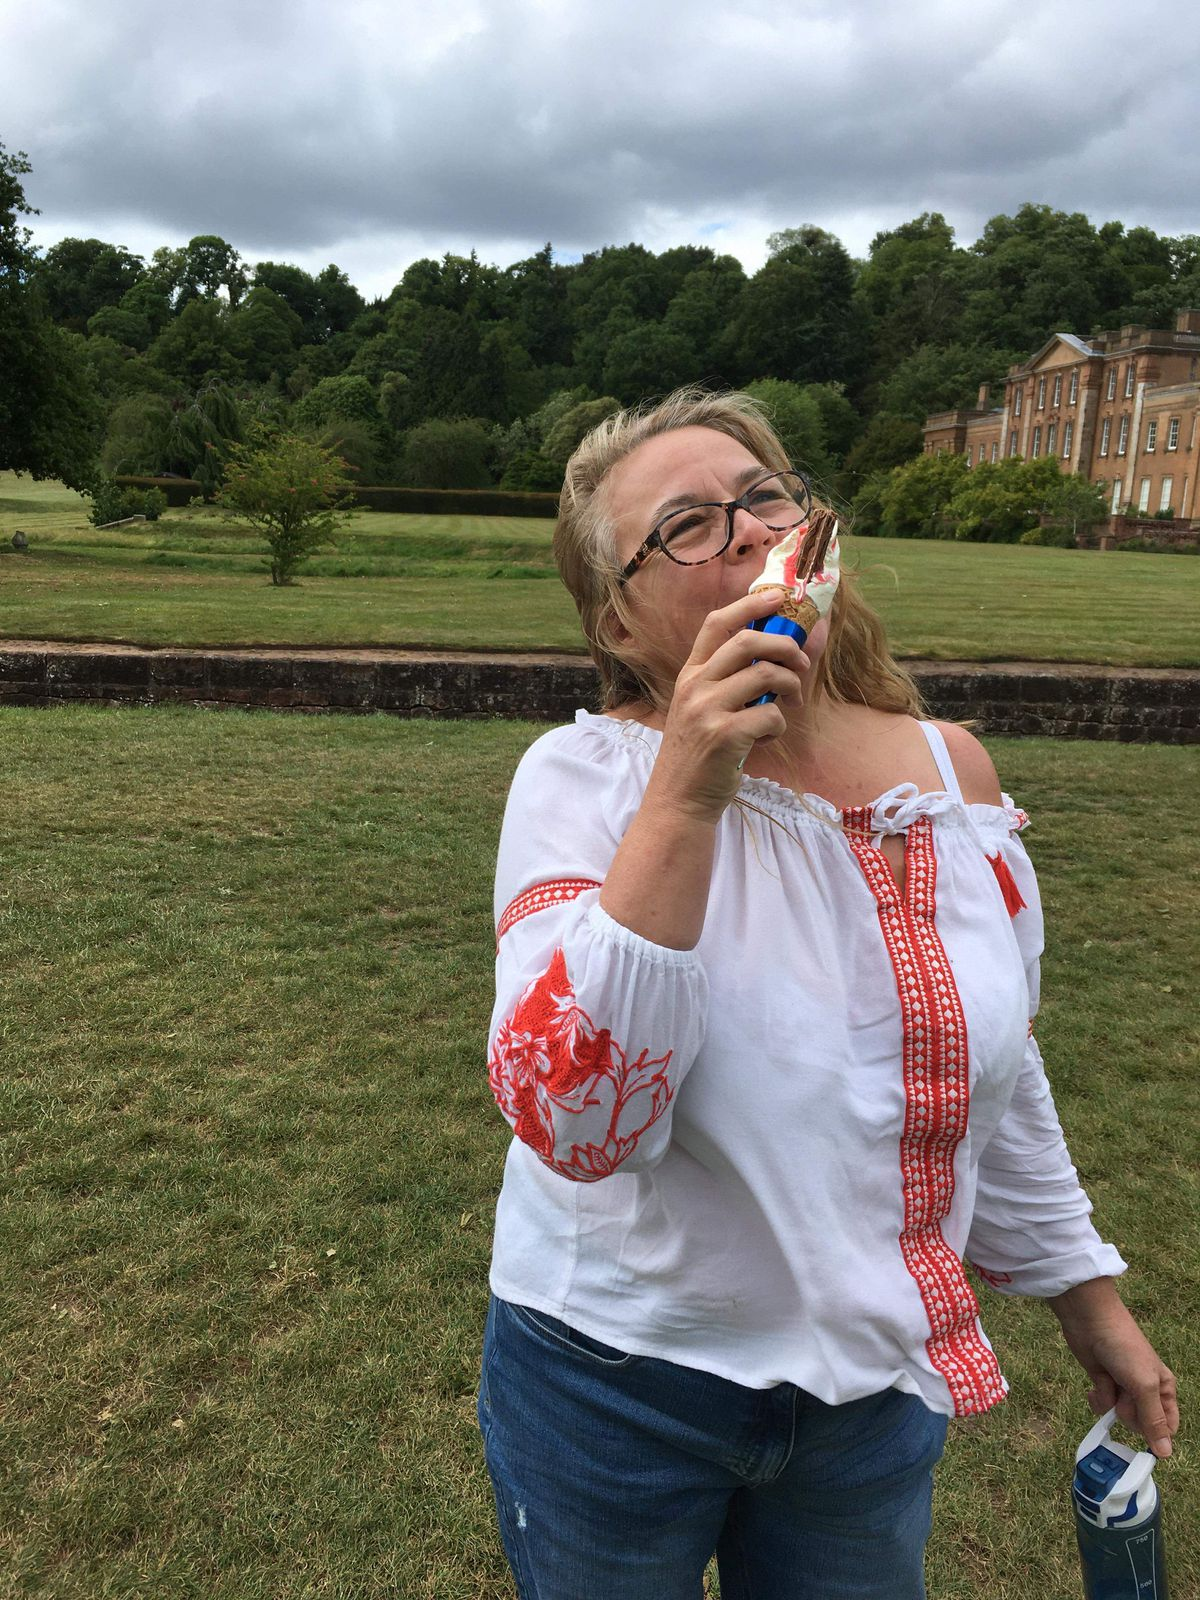 Ann Critcher was delighted to see the ice cream van back at Himley Hall